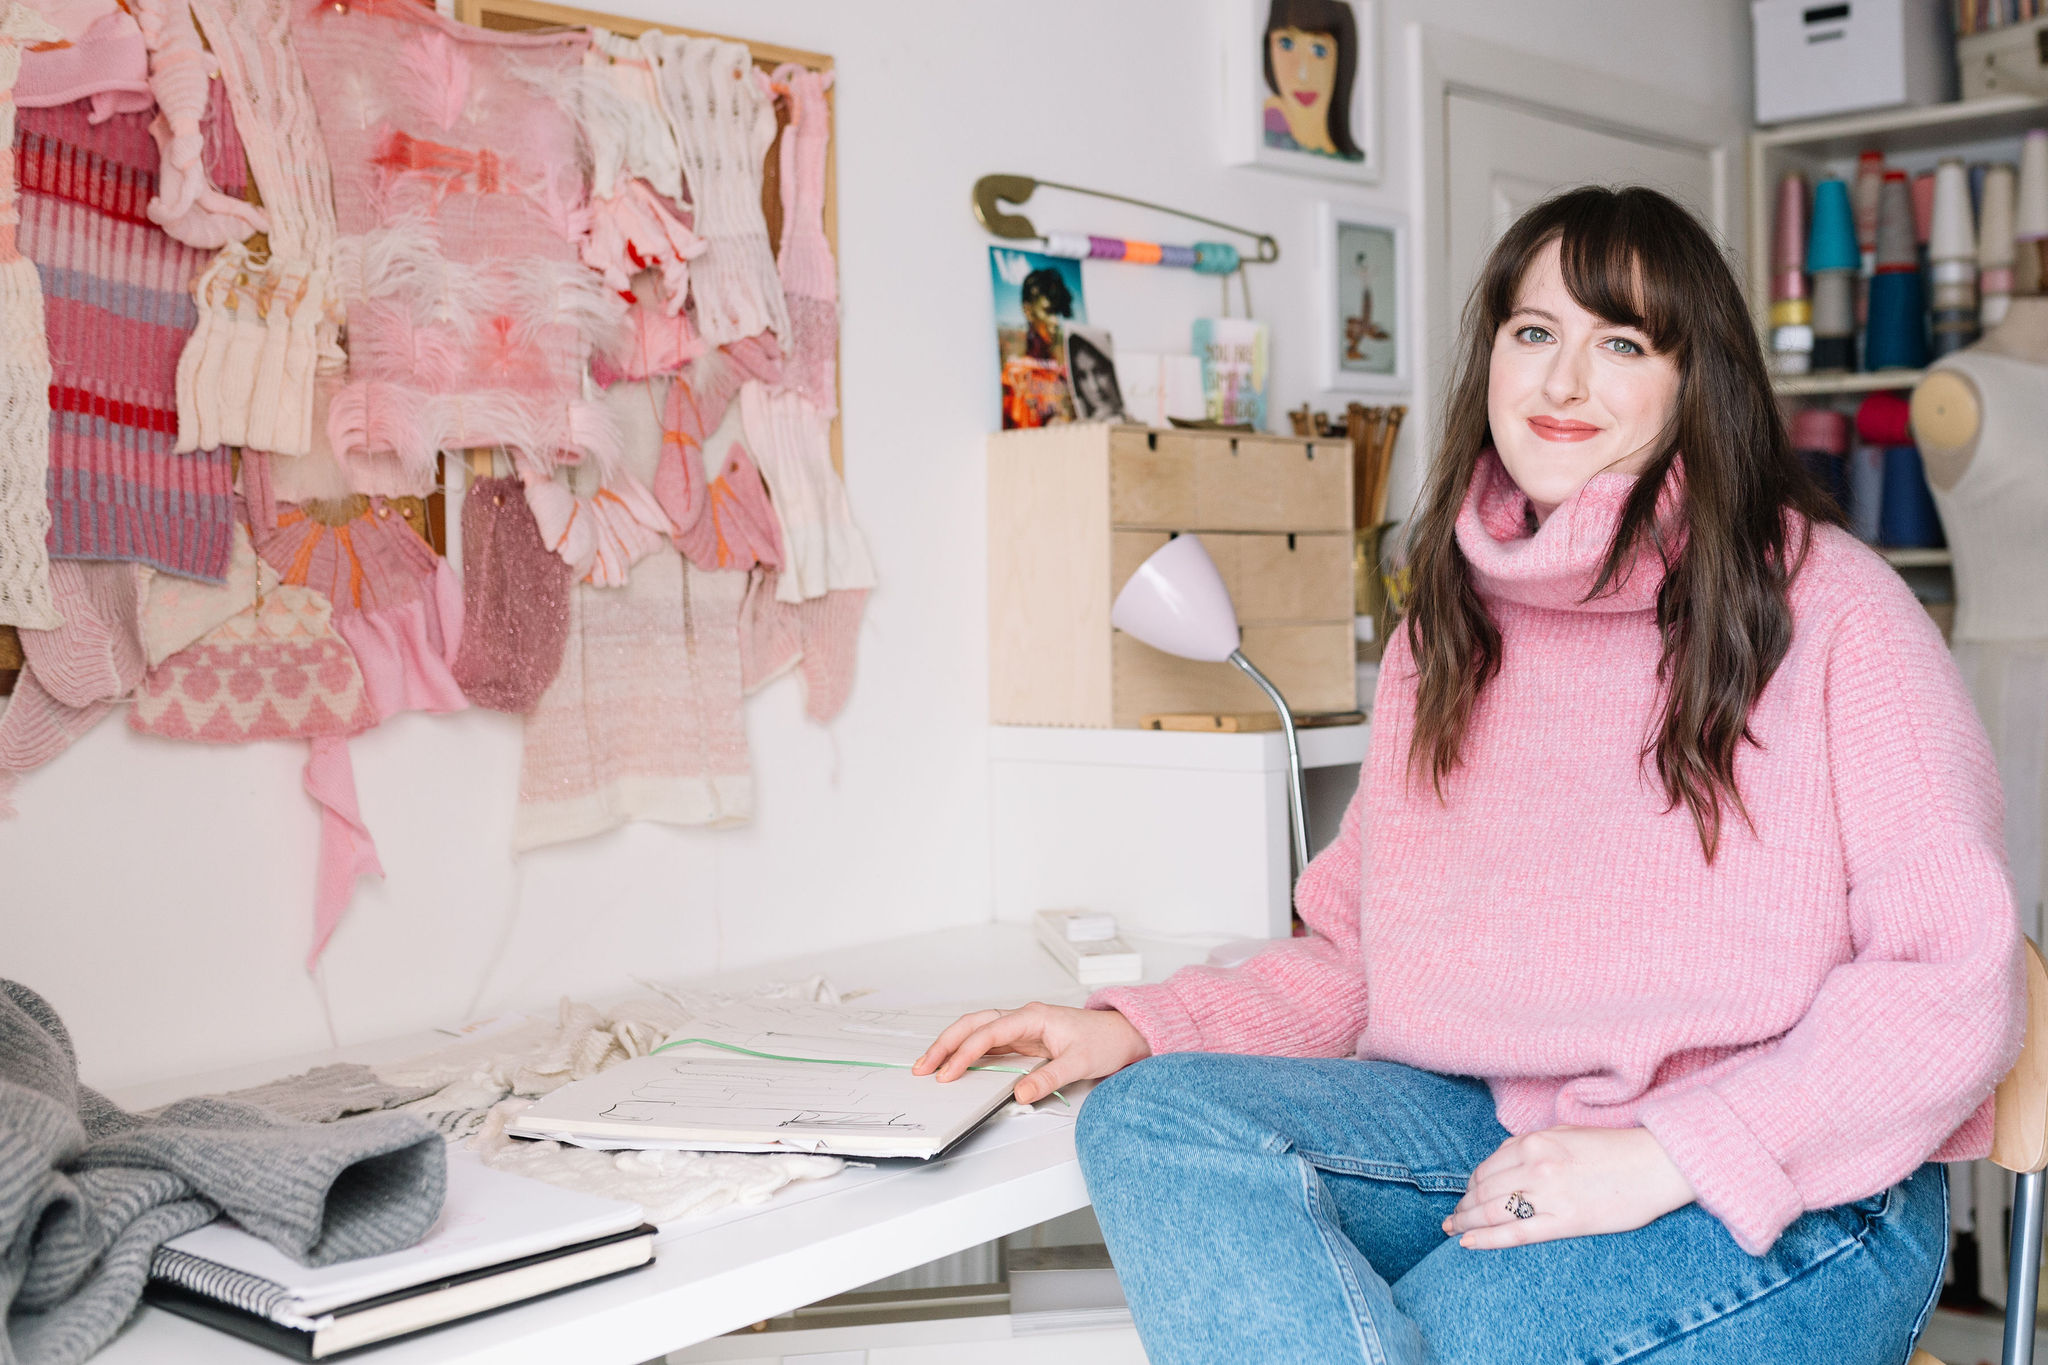 Amber Hards sitting in her studio surrounded by knitting machine fabric swatches and sketchbooks